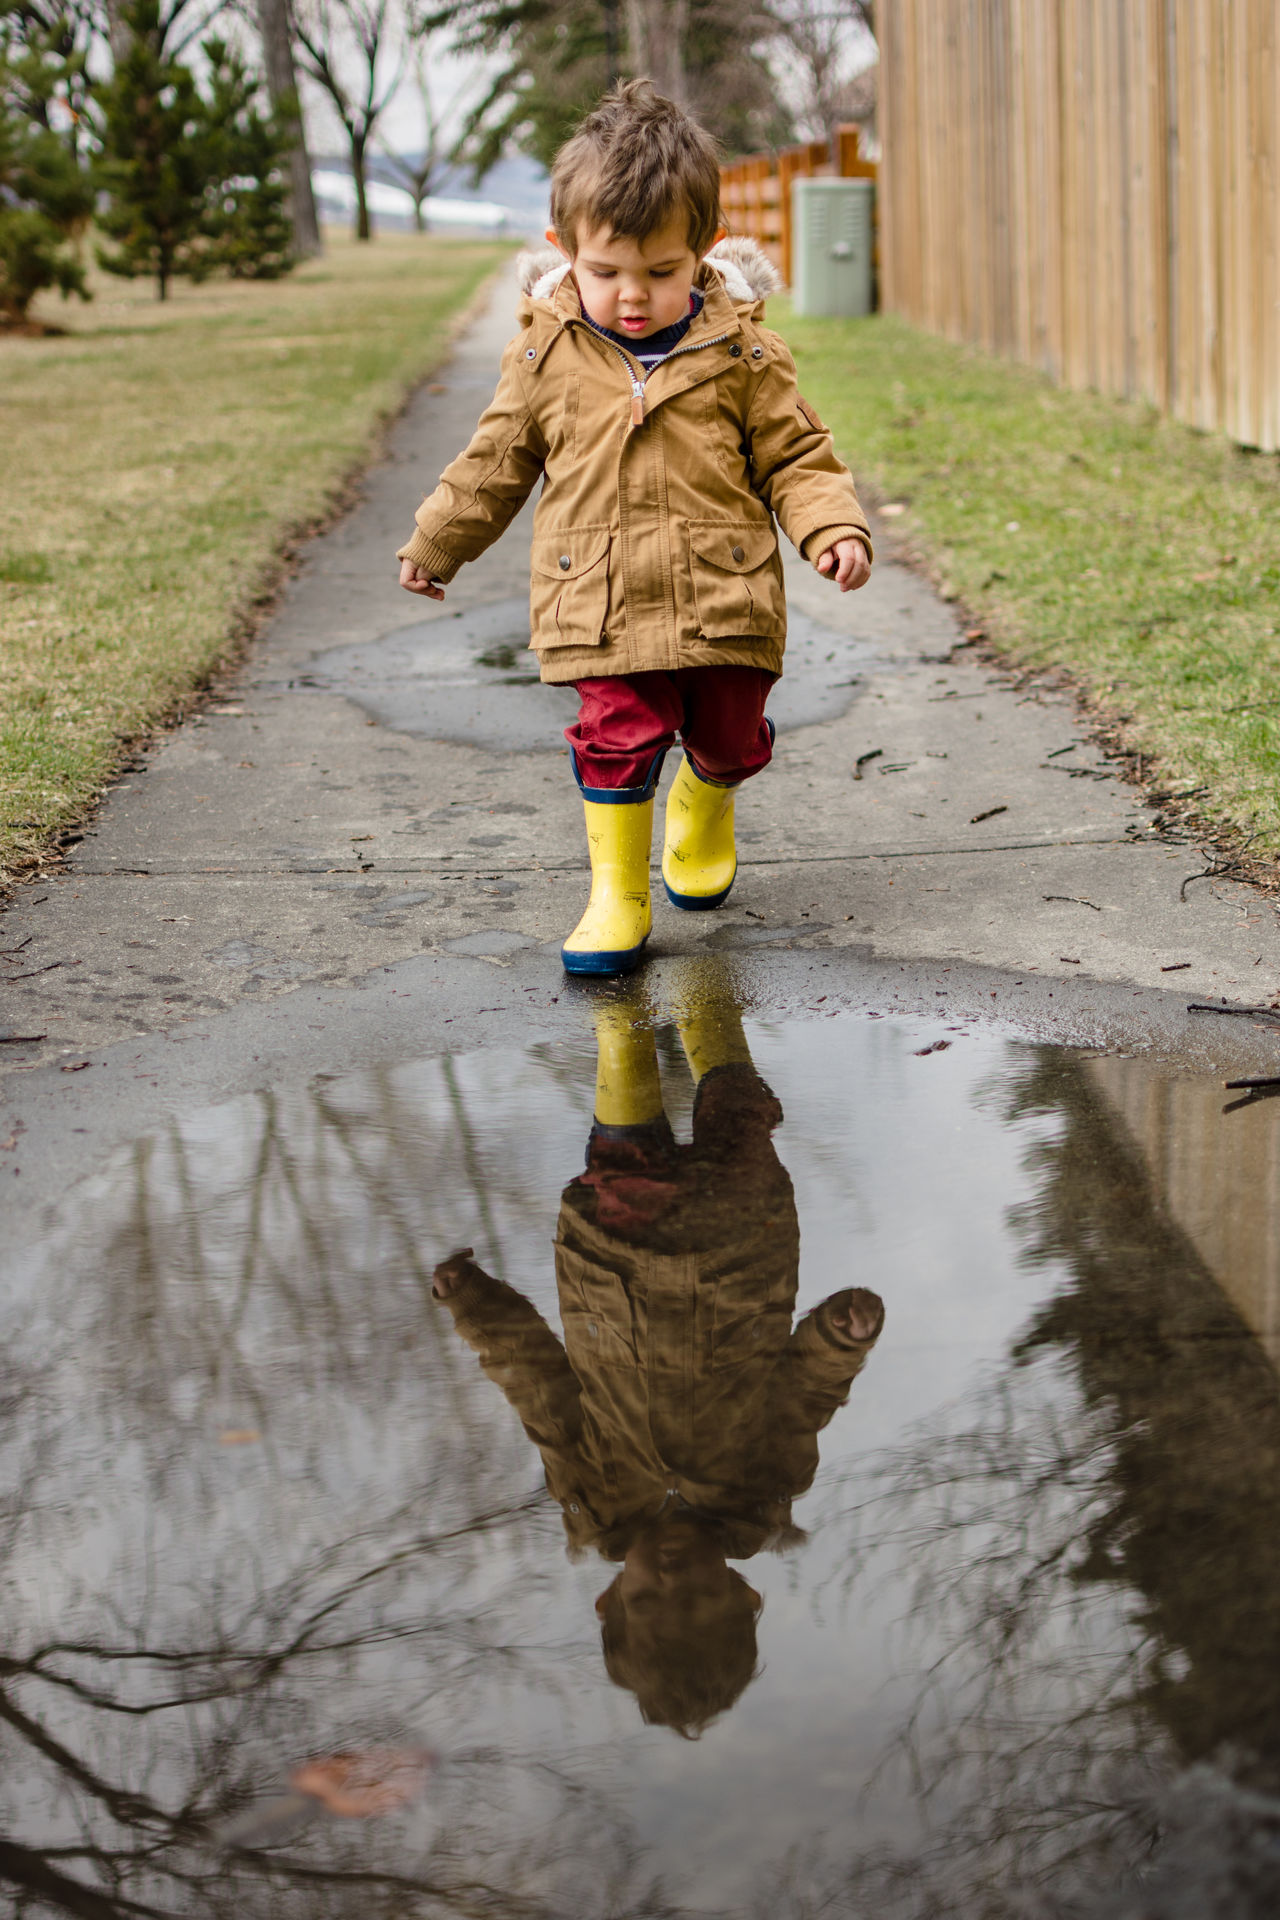 Little boy having fun in a rain puddle Boy Casual Clothing Child Childhood Day Fun Gumboots Jacket Lifestyles Outdoors Puddle Rain Boots Rainy Reflection Season  Spring Toddler  Water Wellington Boots Yellow